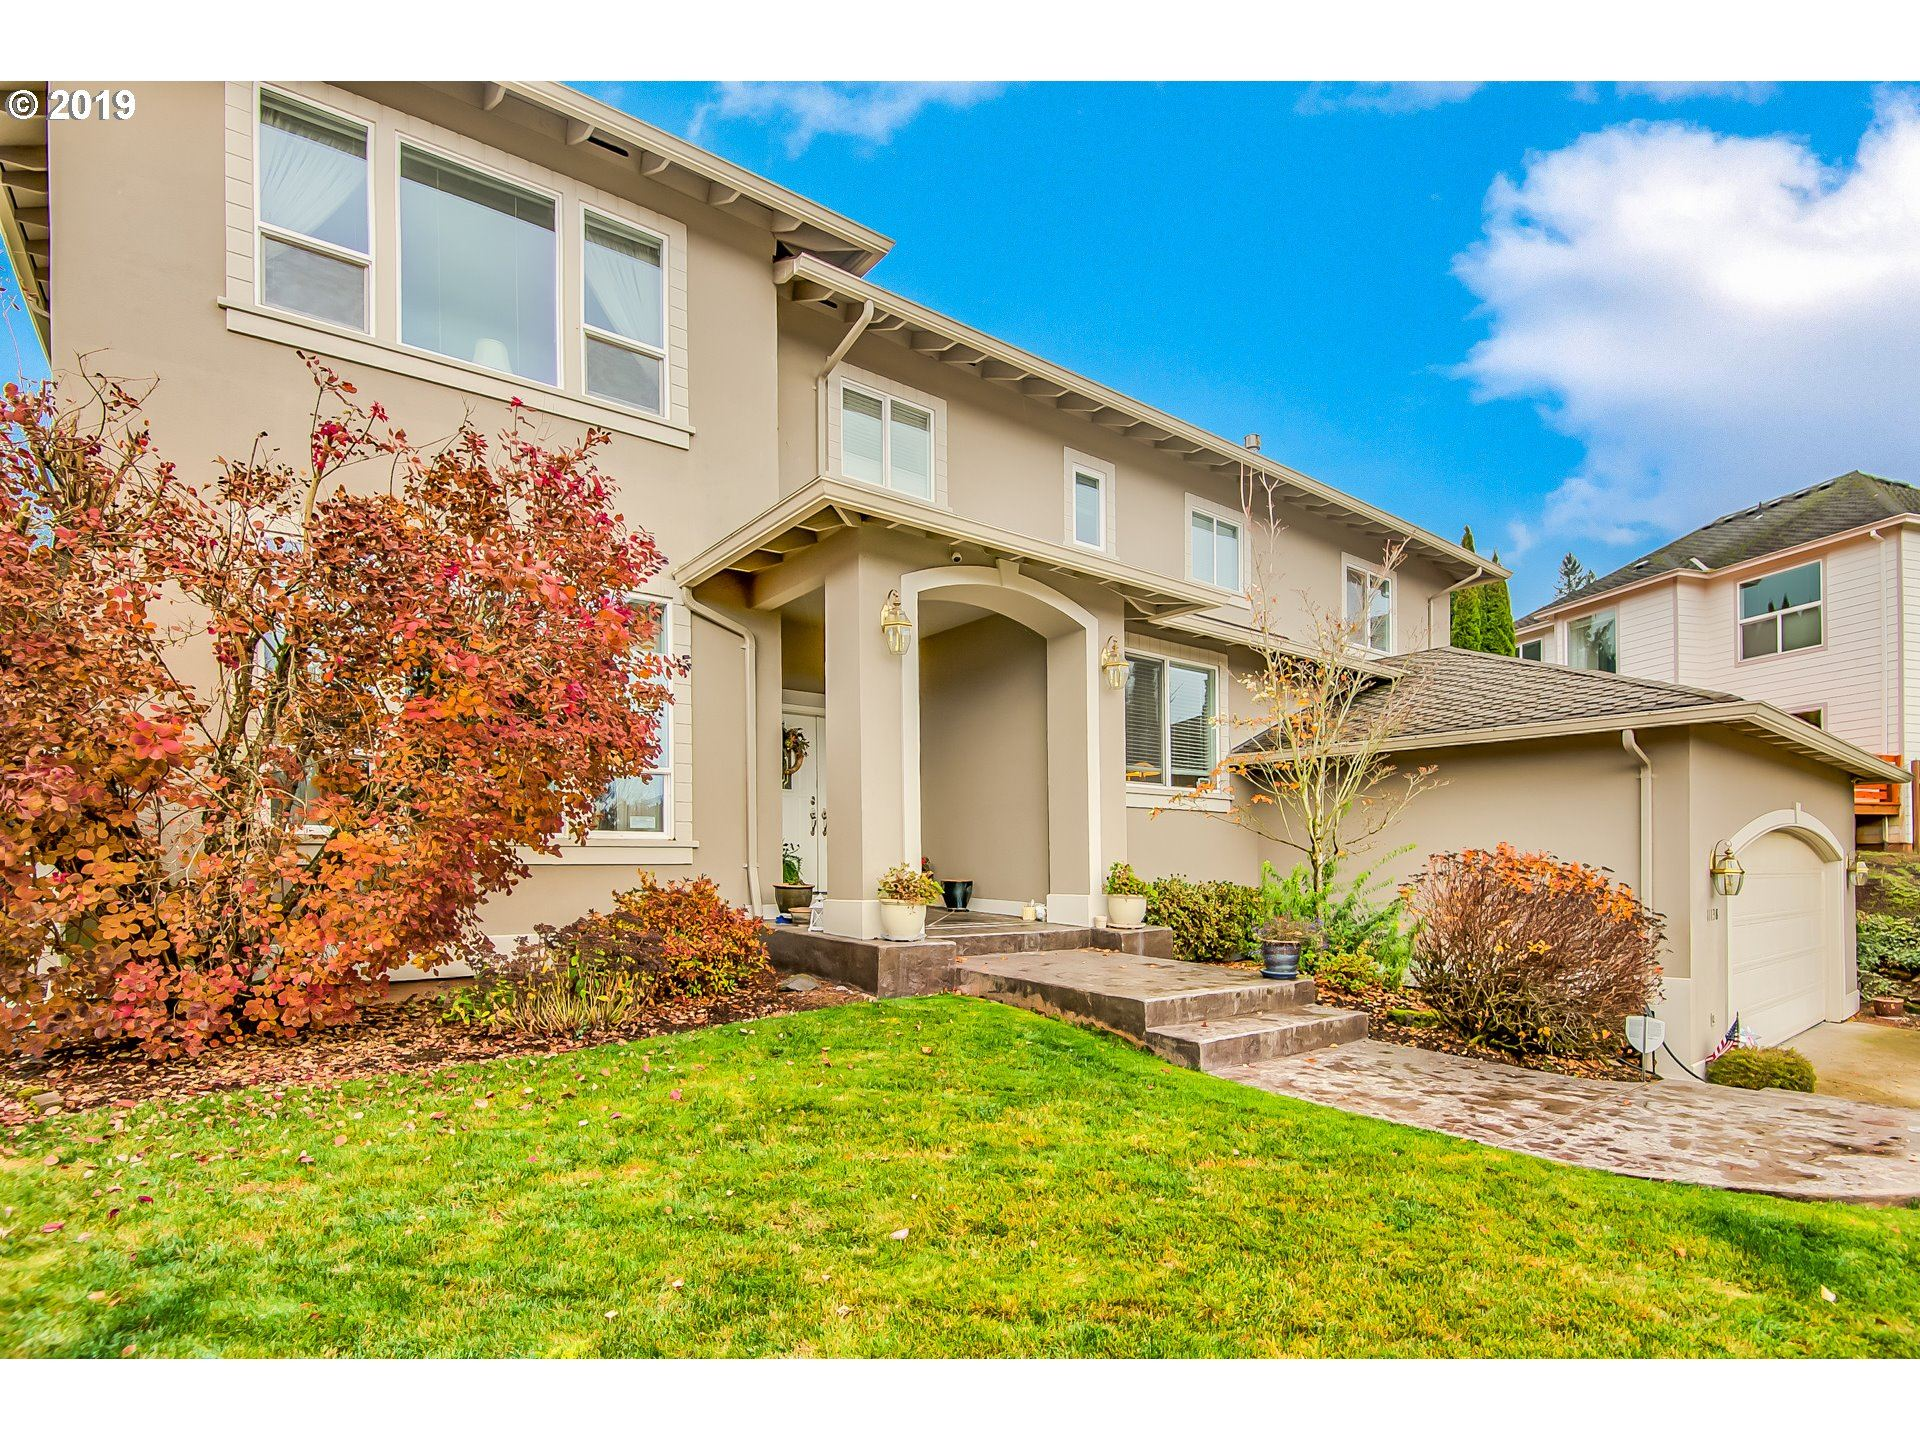 11138 SE TROIKA AVE, Happy Valley, OR 97086 - #: 19408232